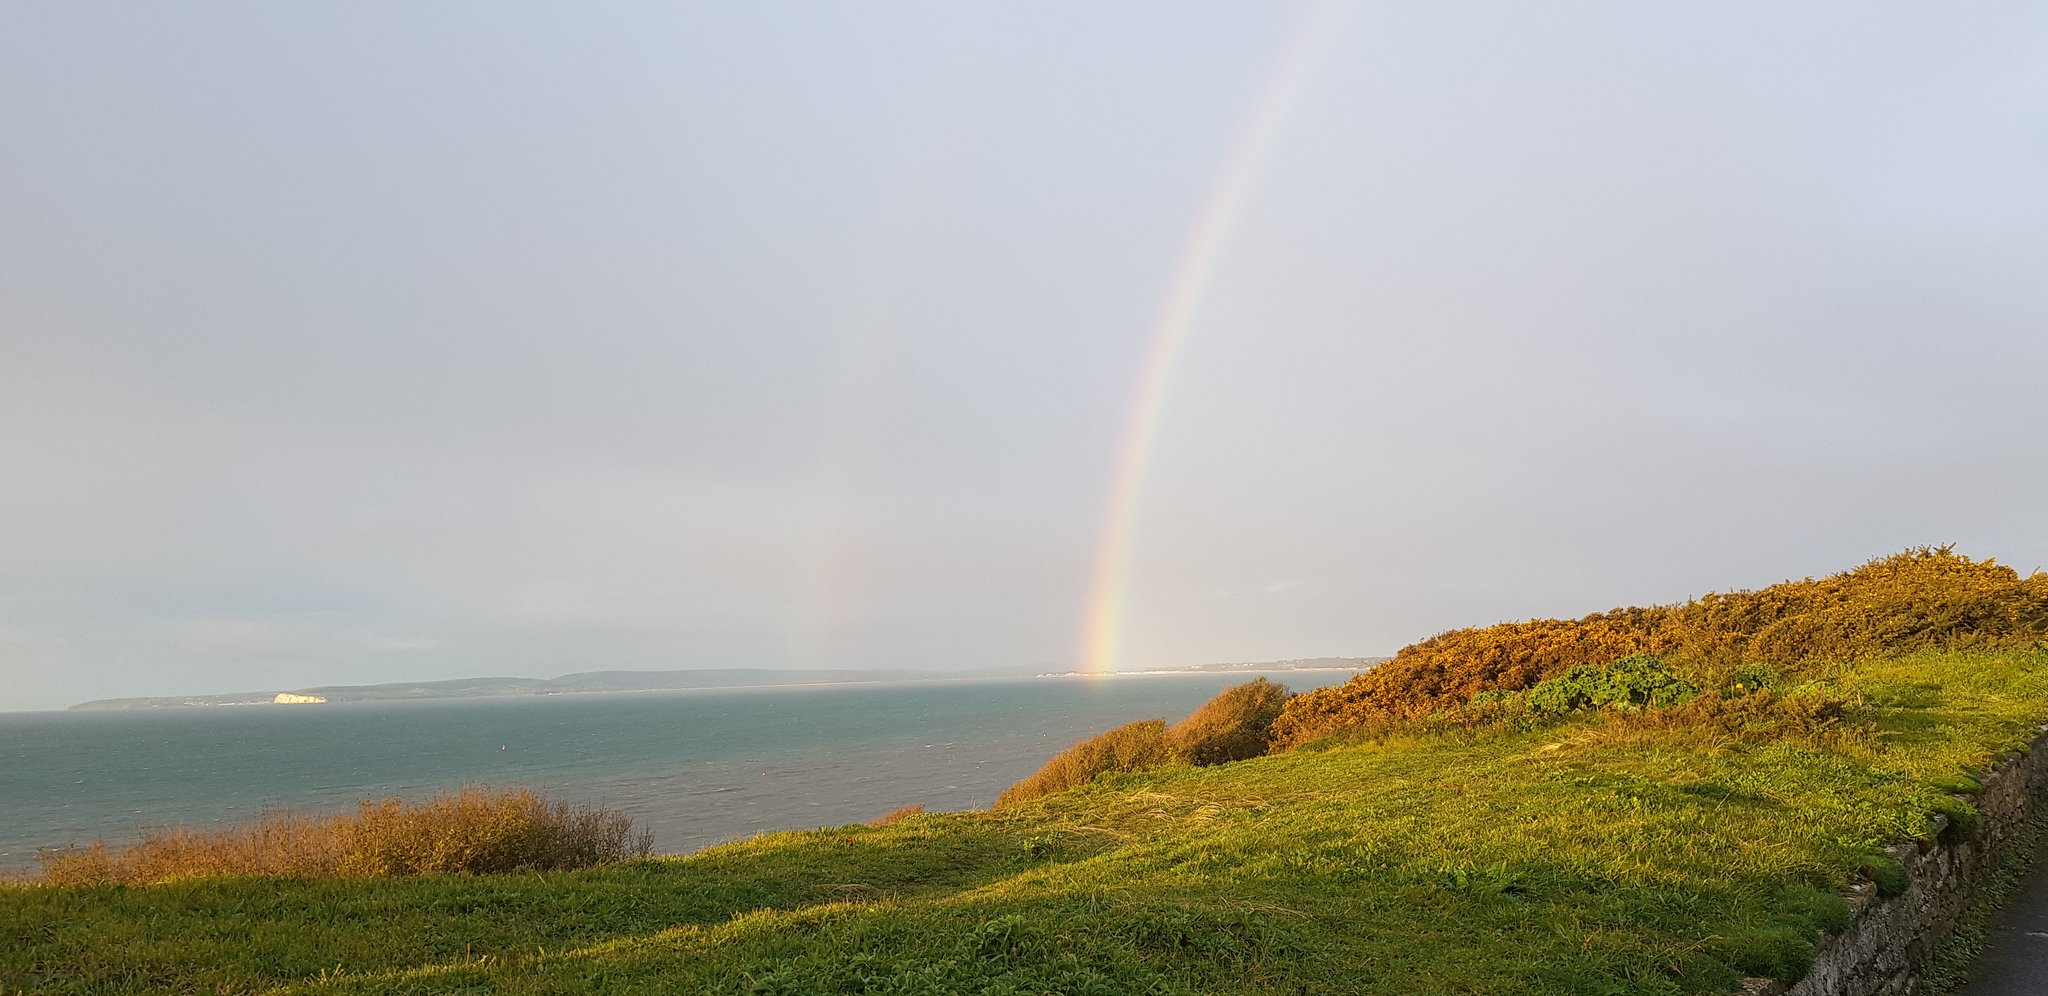 Rainbow over sea in Bournemouth, Dorset